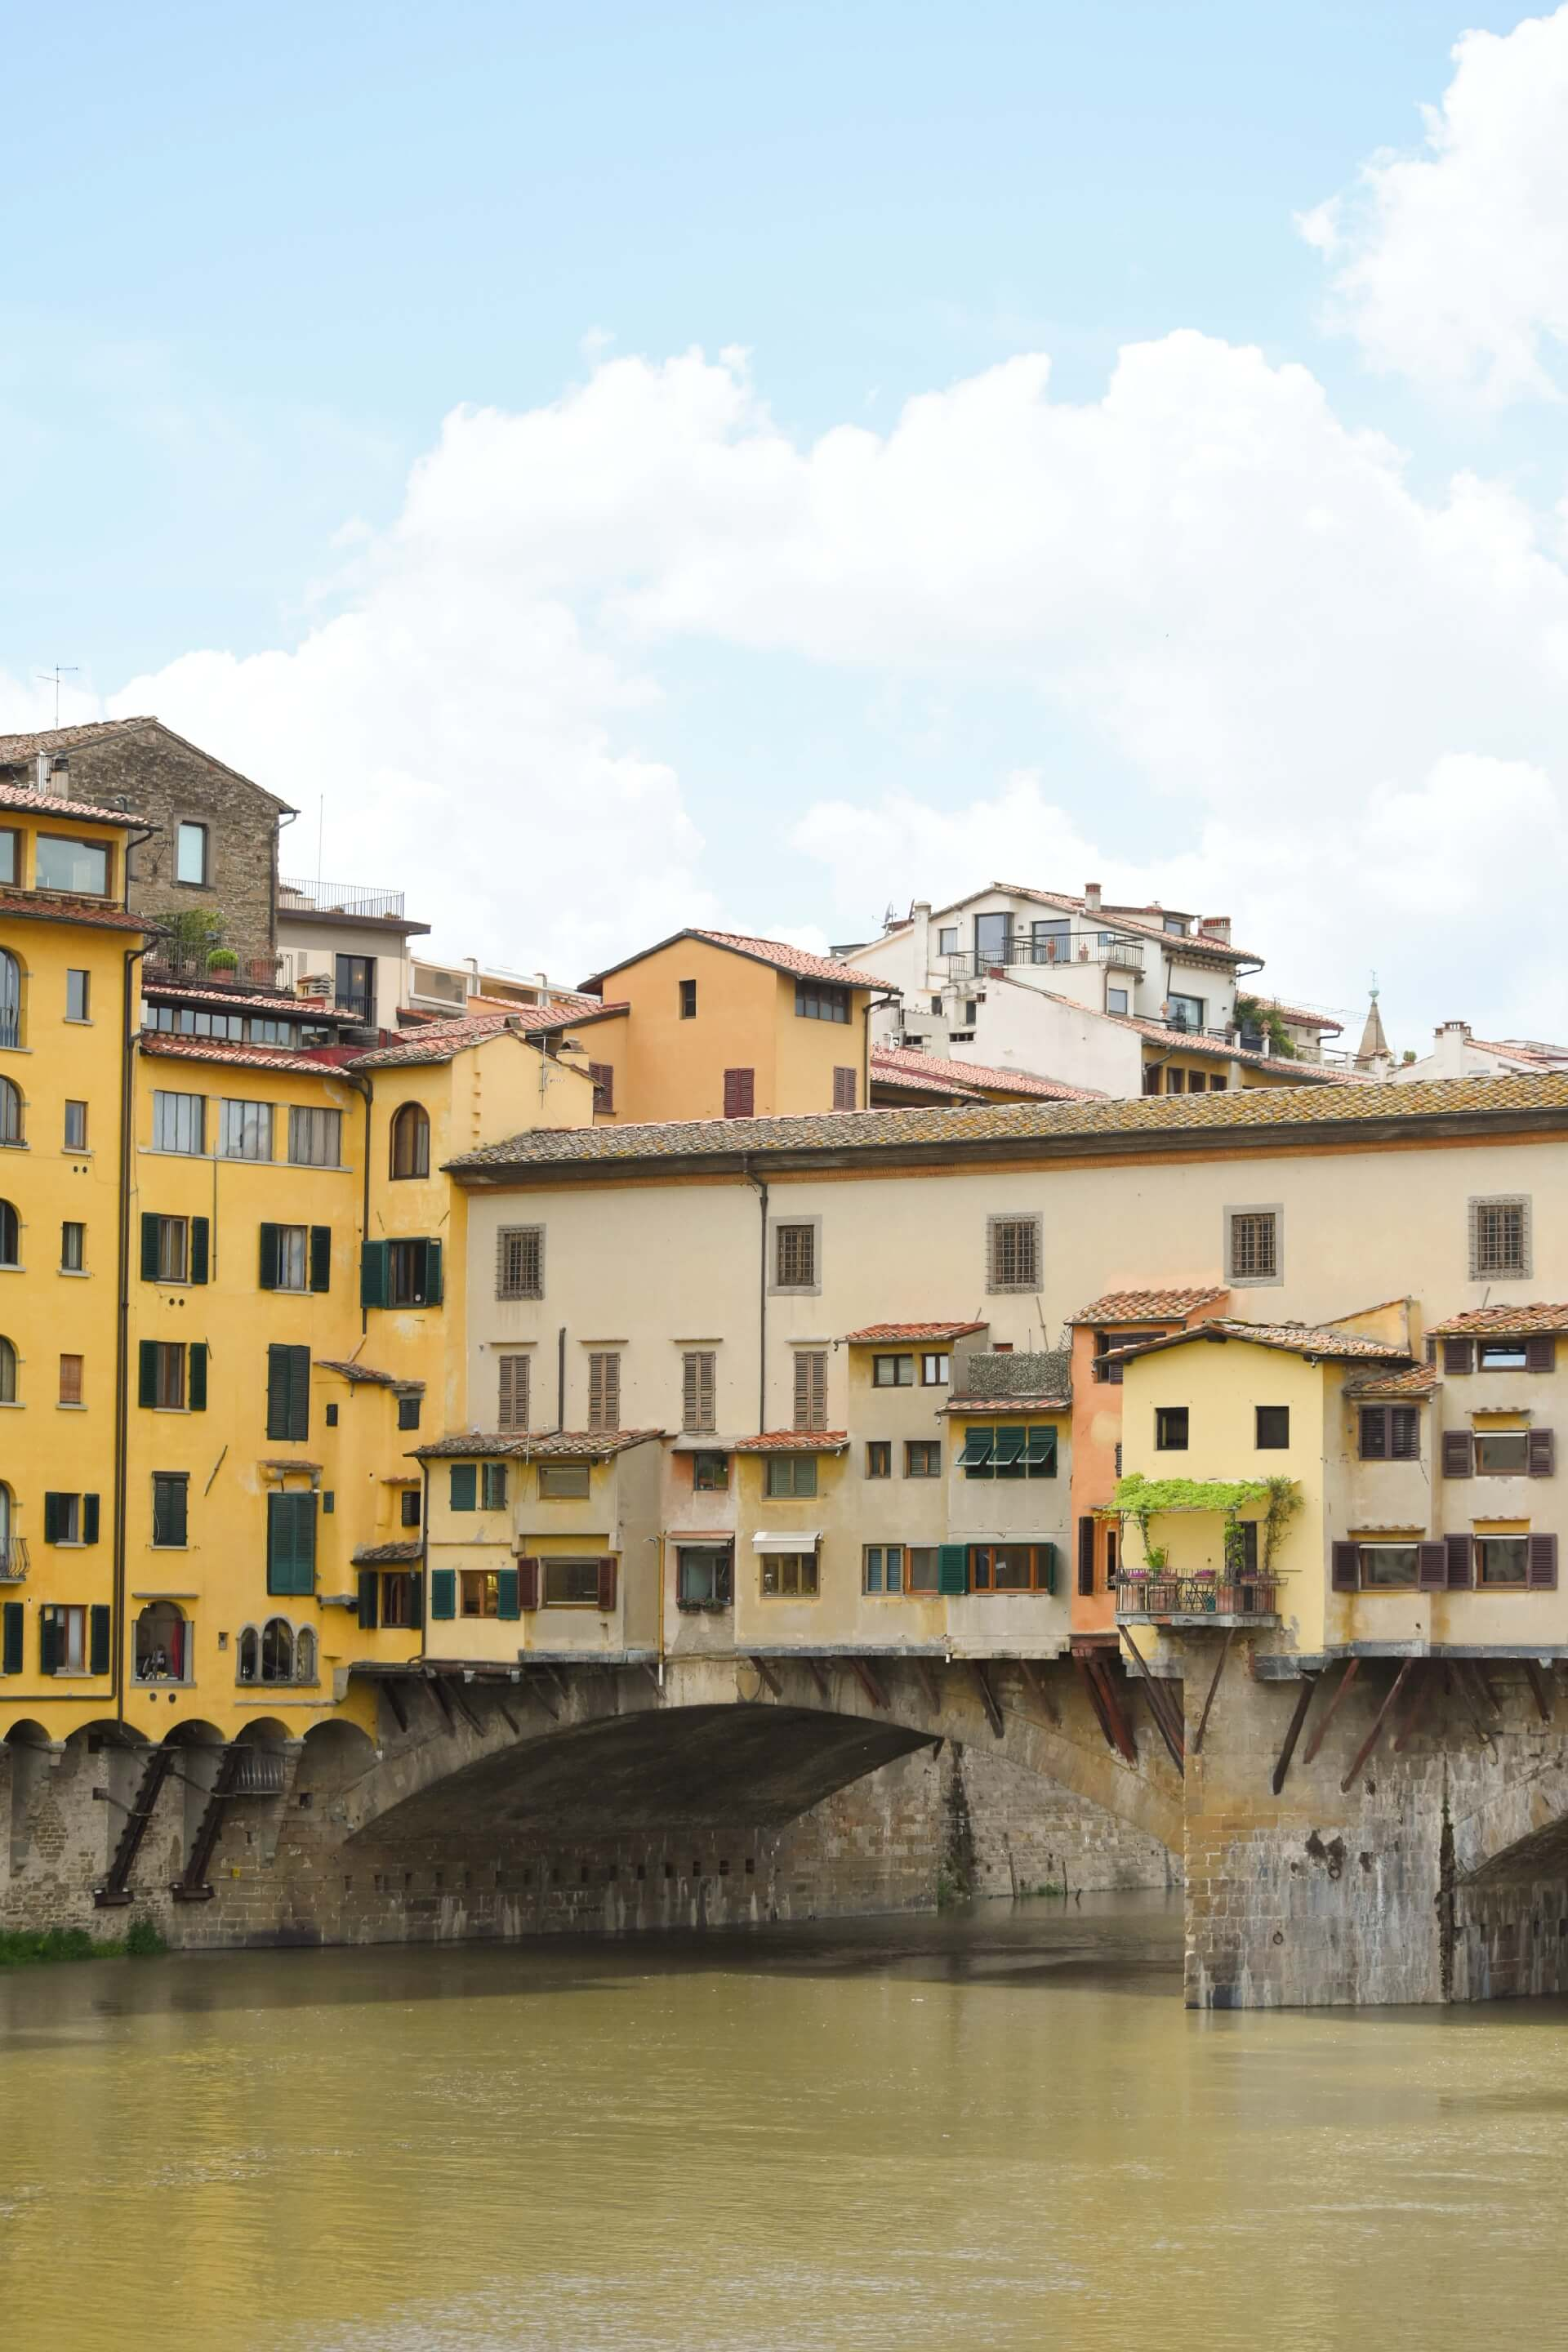 Image of ponte vecchio in florence